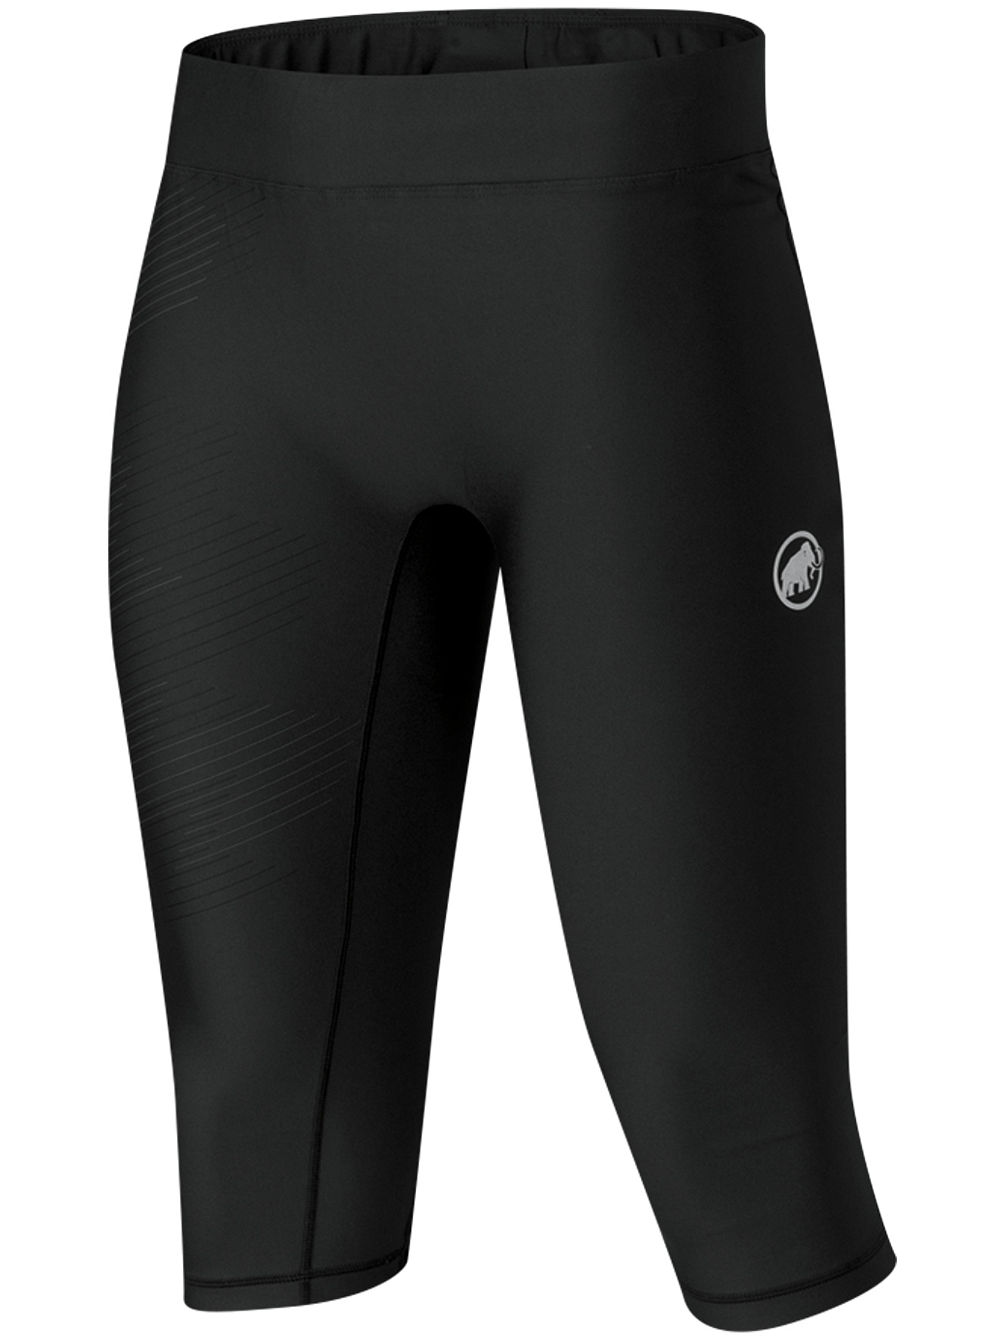 Mtr 201 Tight 3/4 Outdoorhose